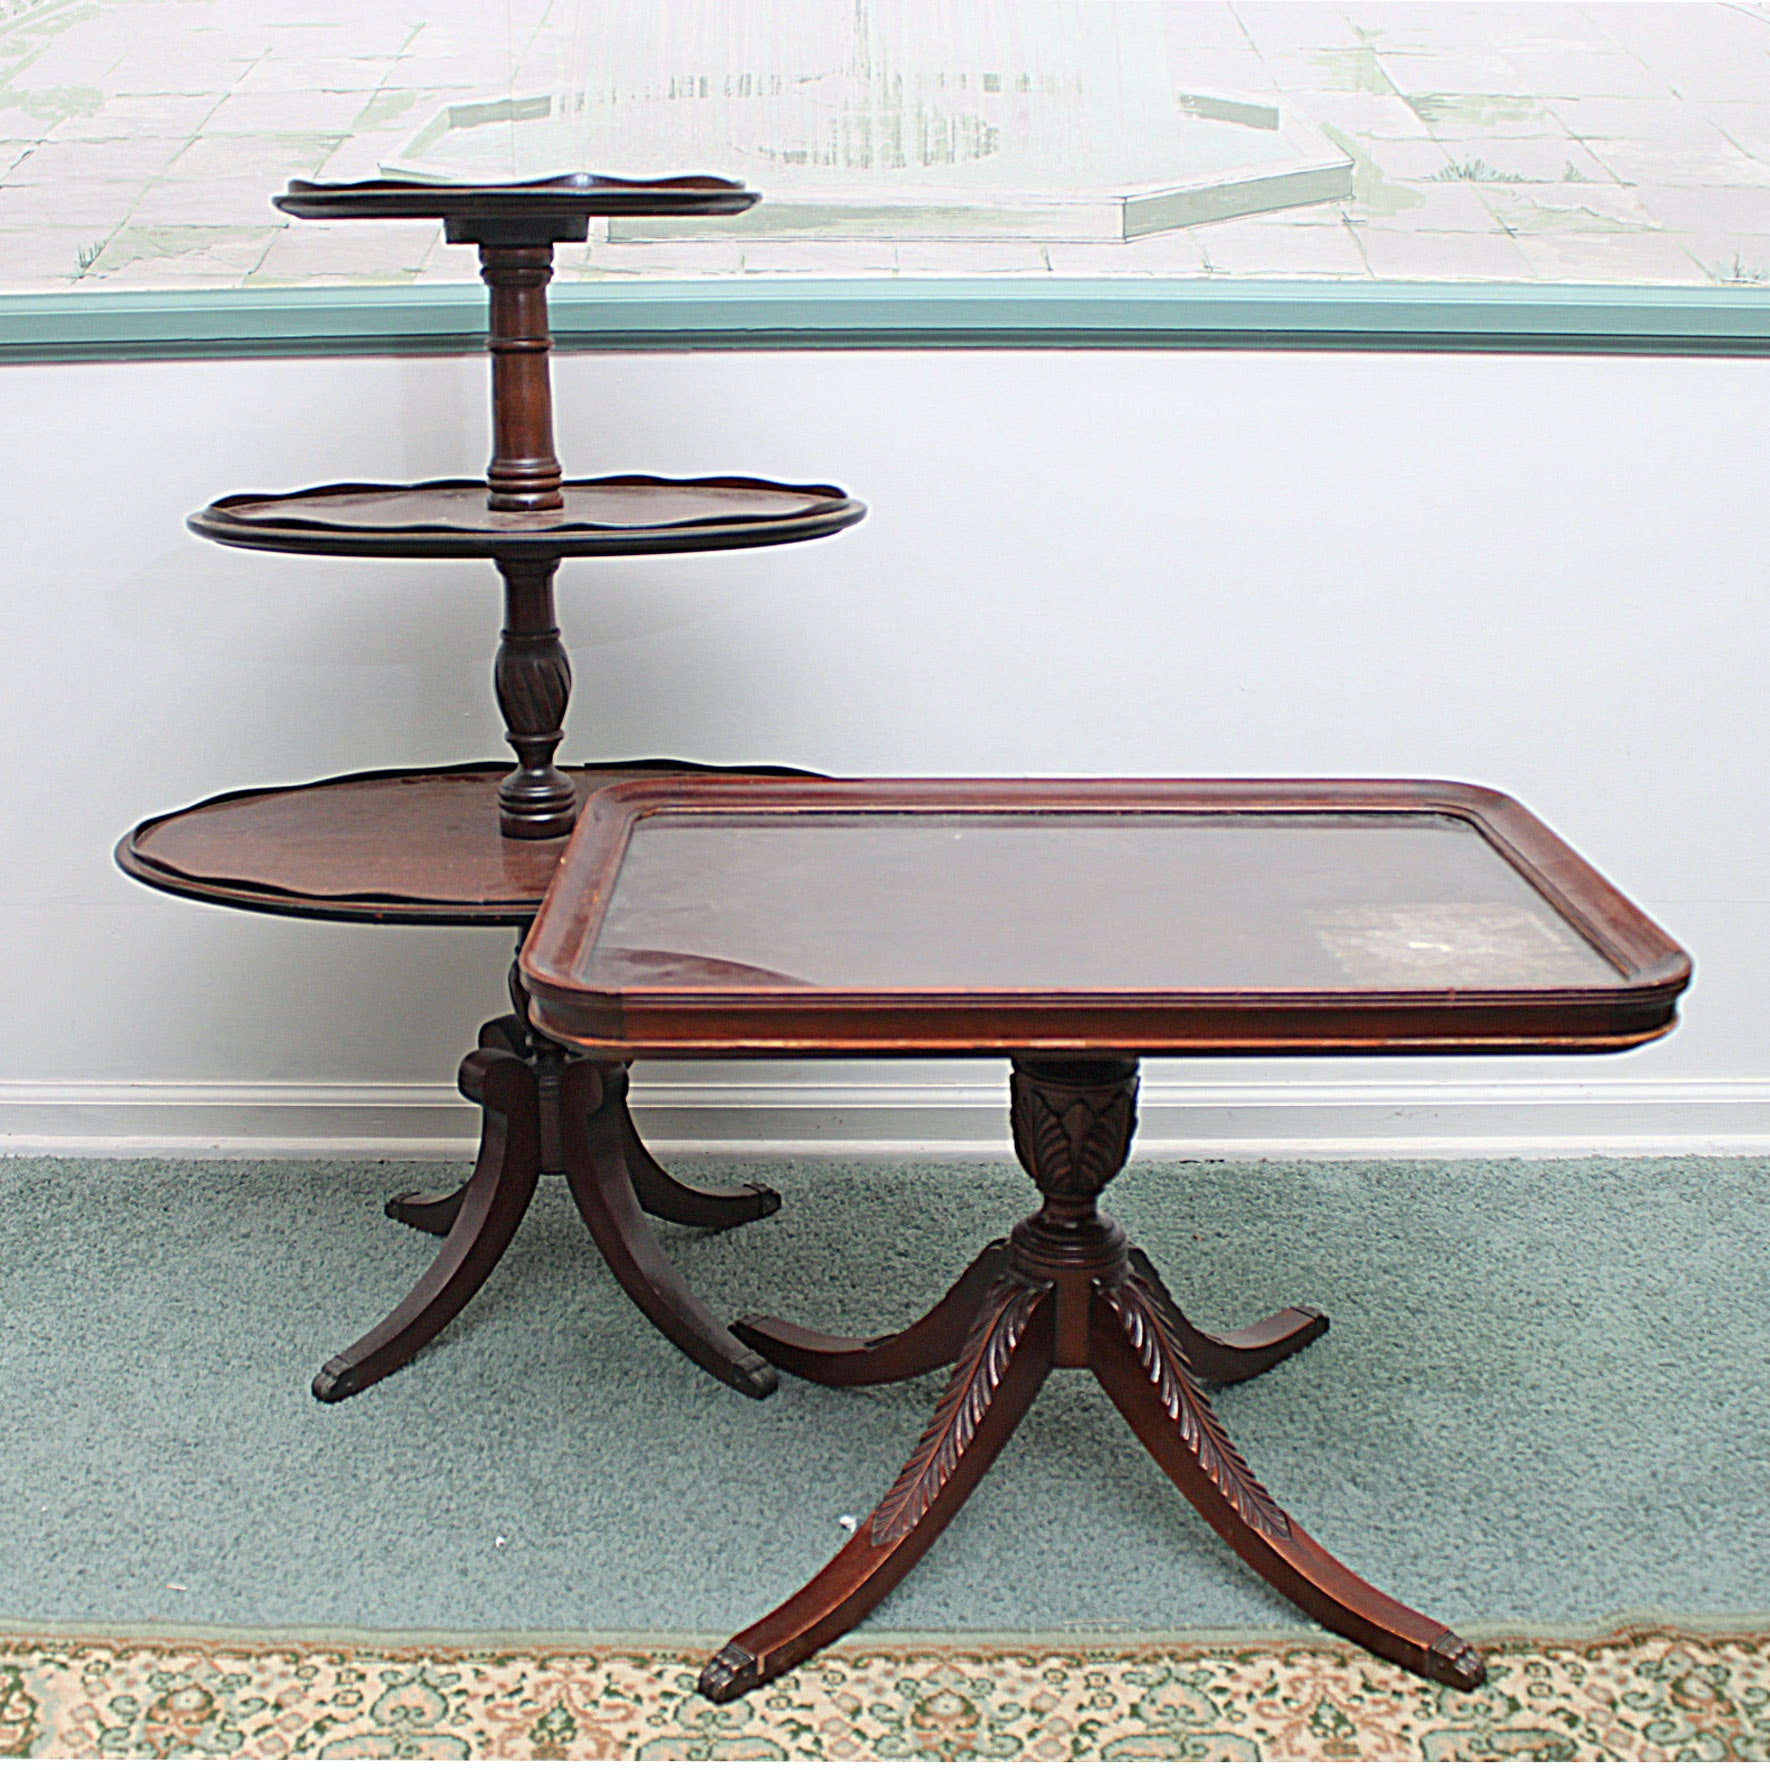 Vintage Duncan Phyfe Style Three Tier Table and Glass Top Side Table